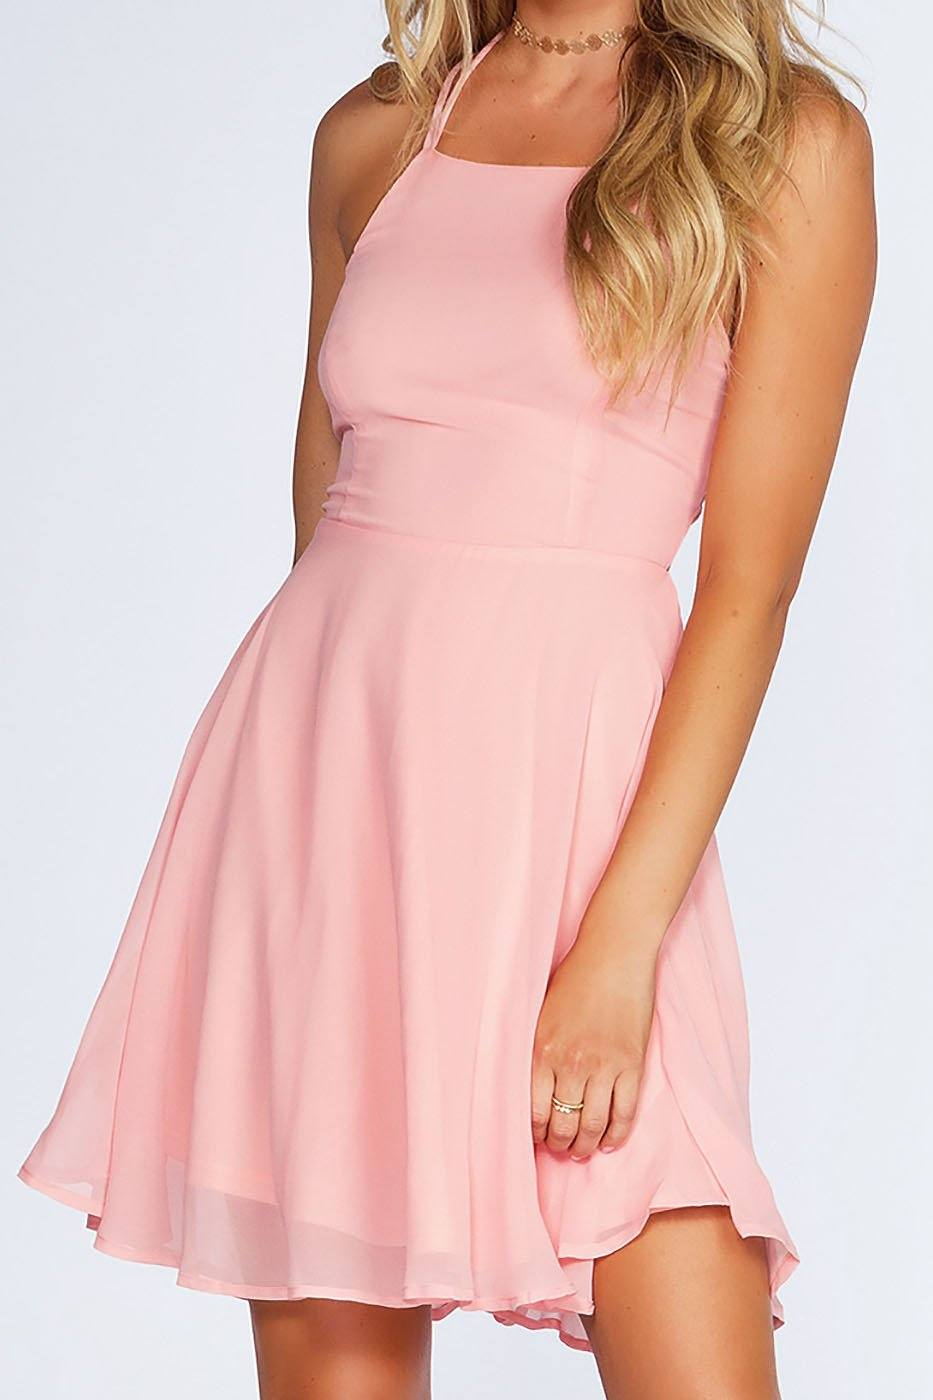 Roxy Dress - Blush | Listicle